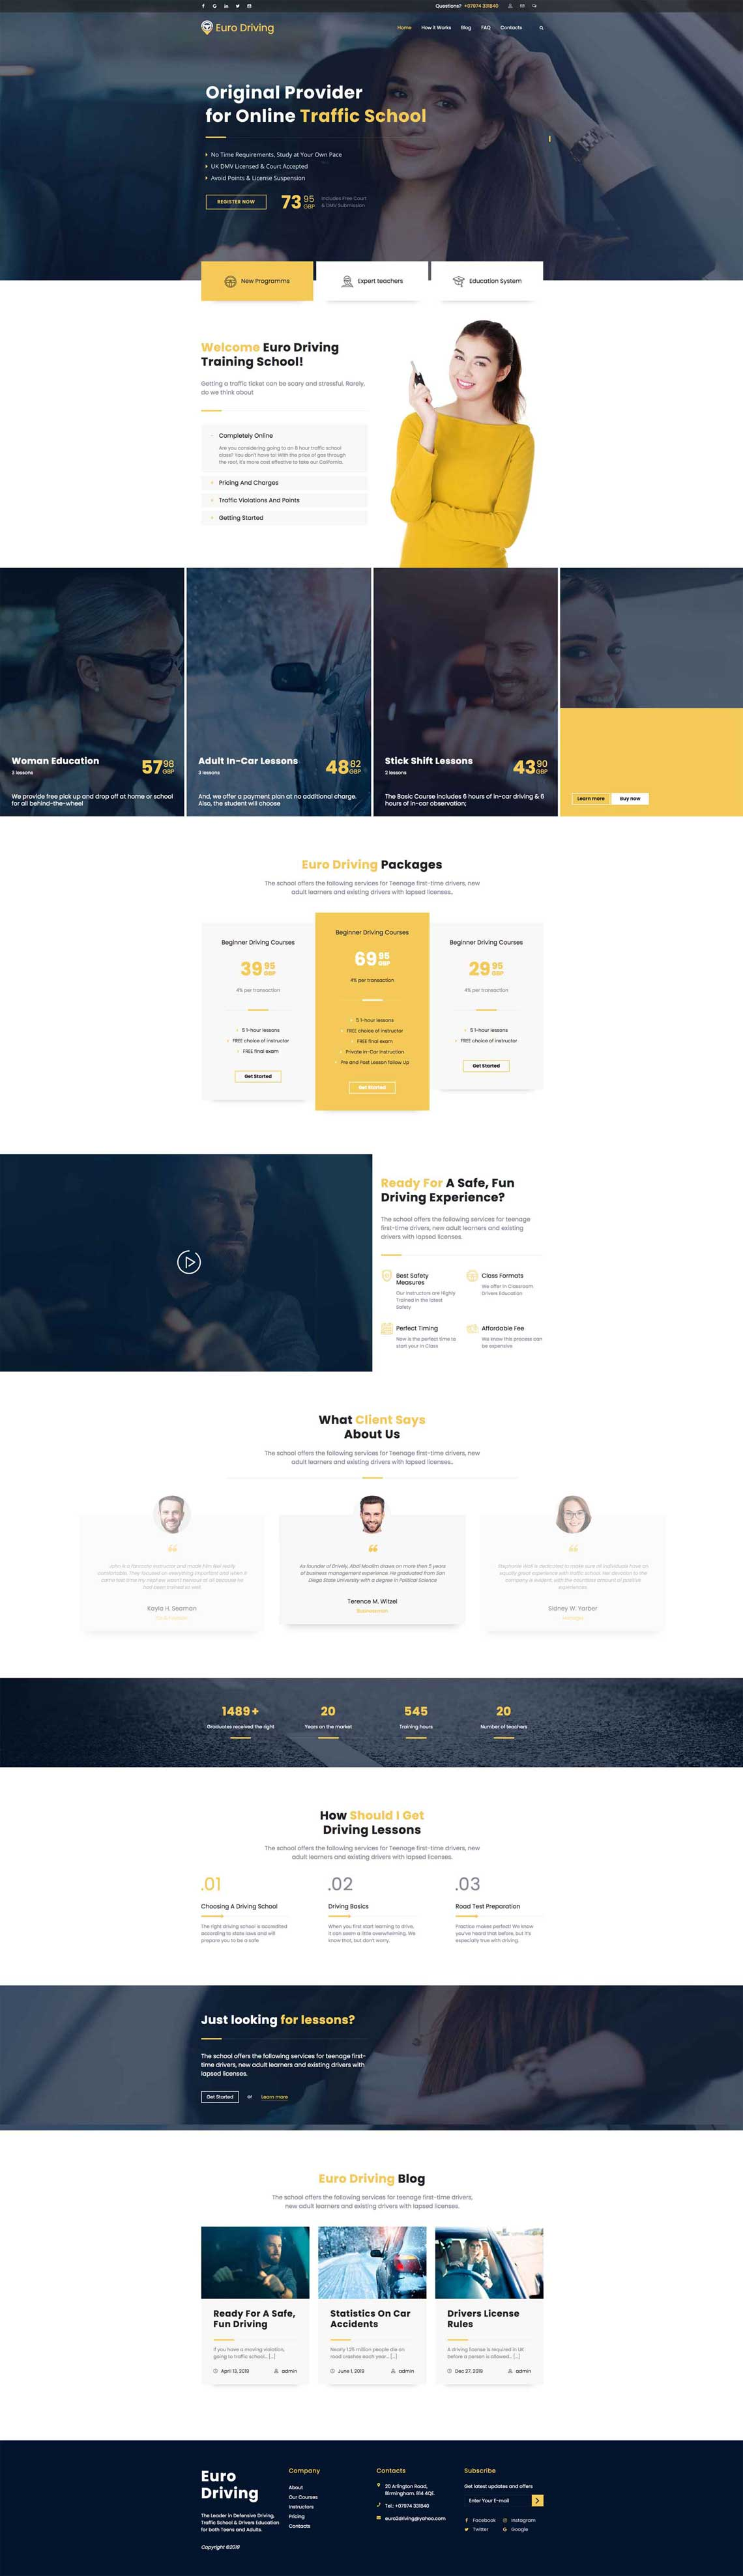 HomePage Design for Euro Driving